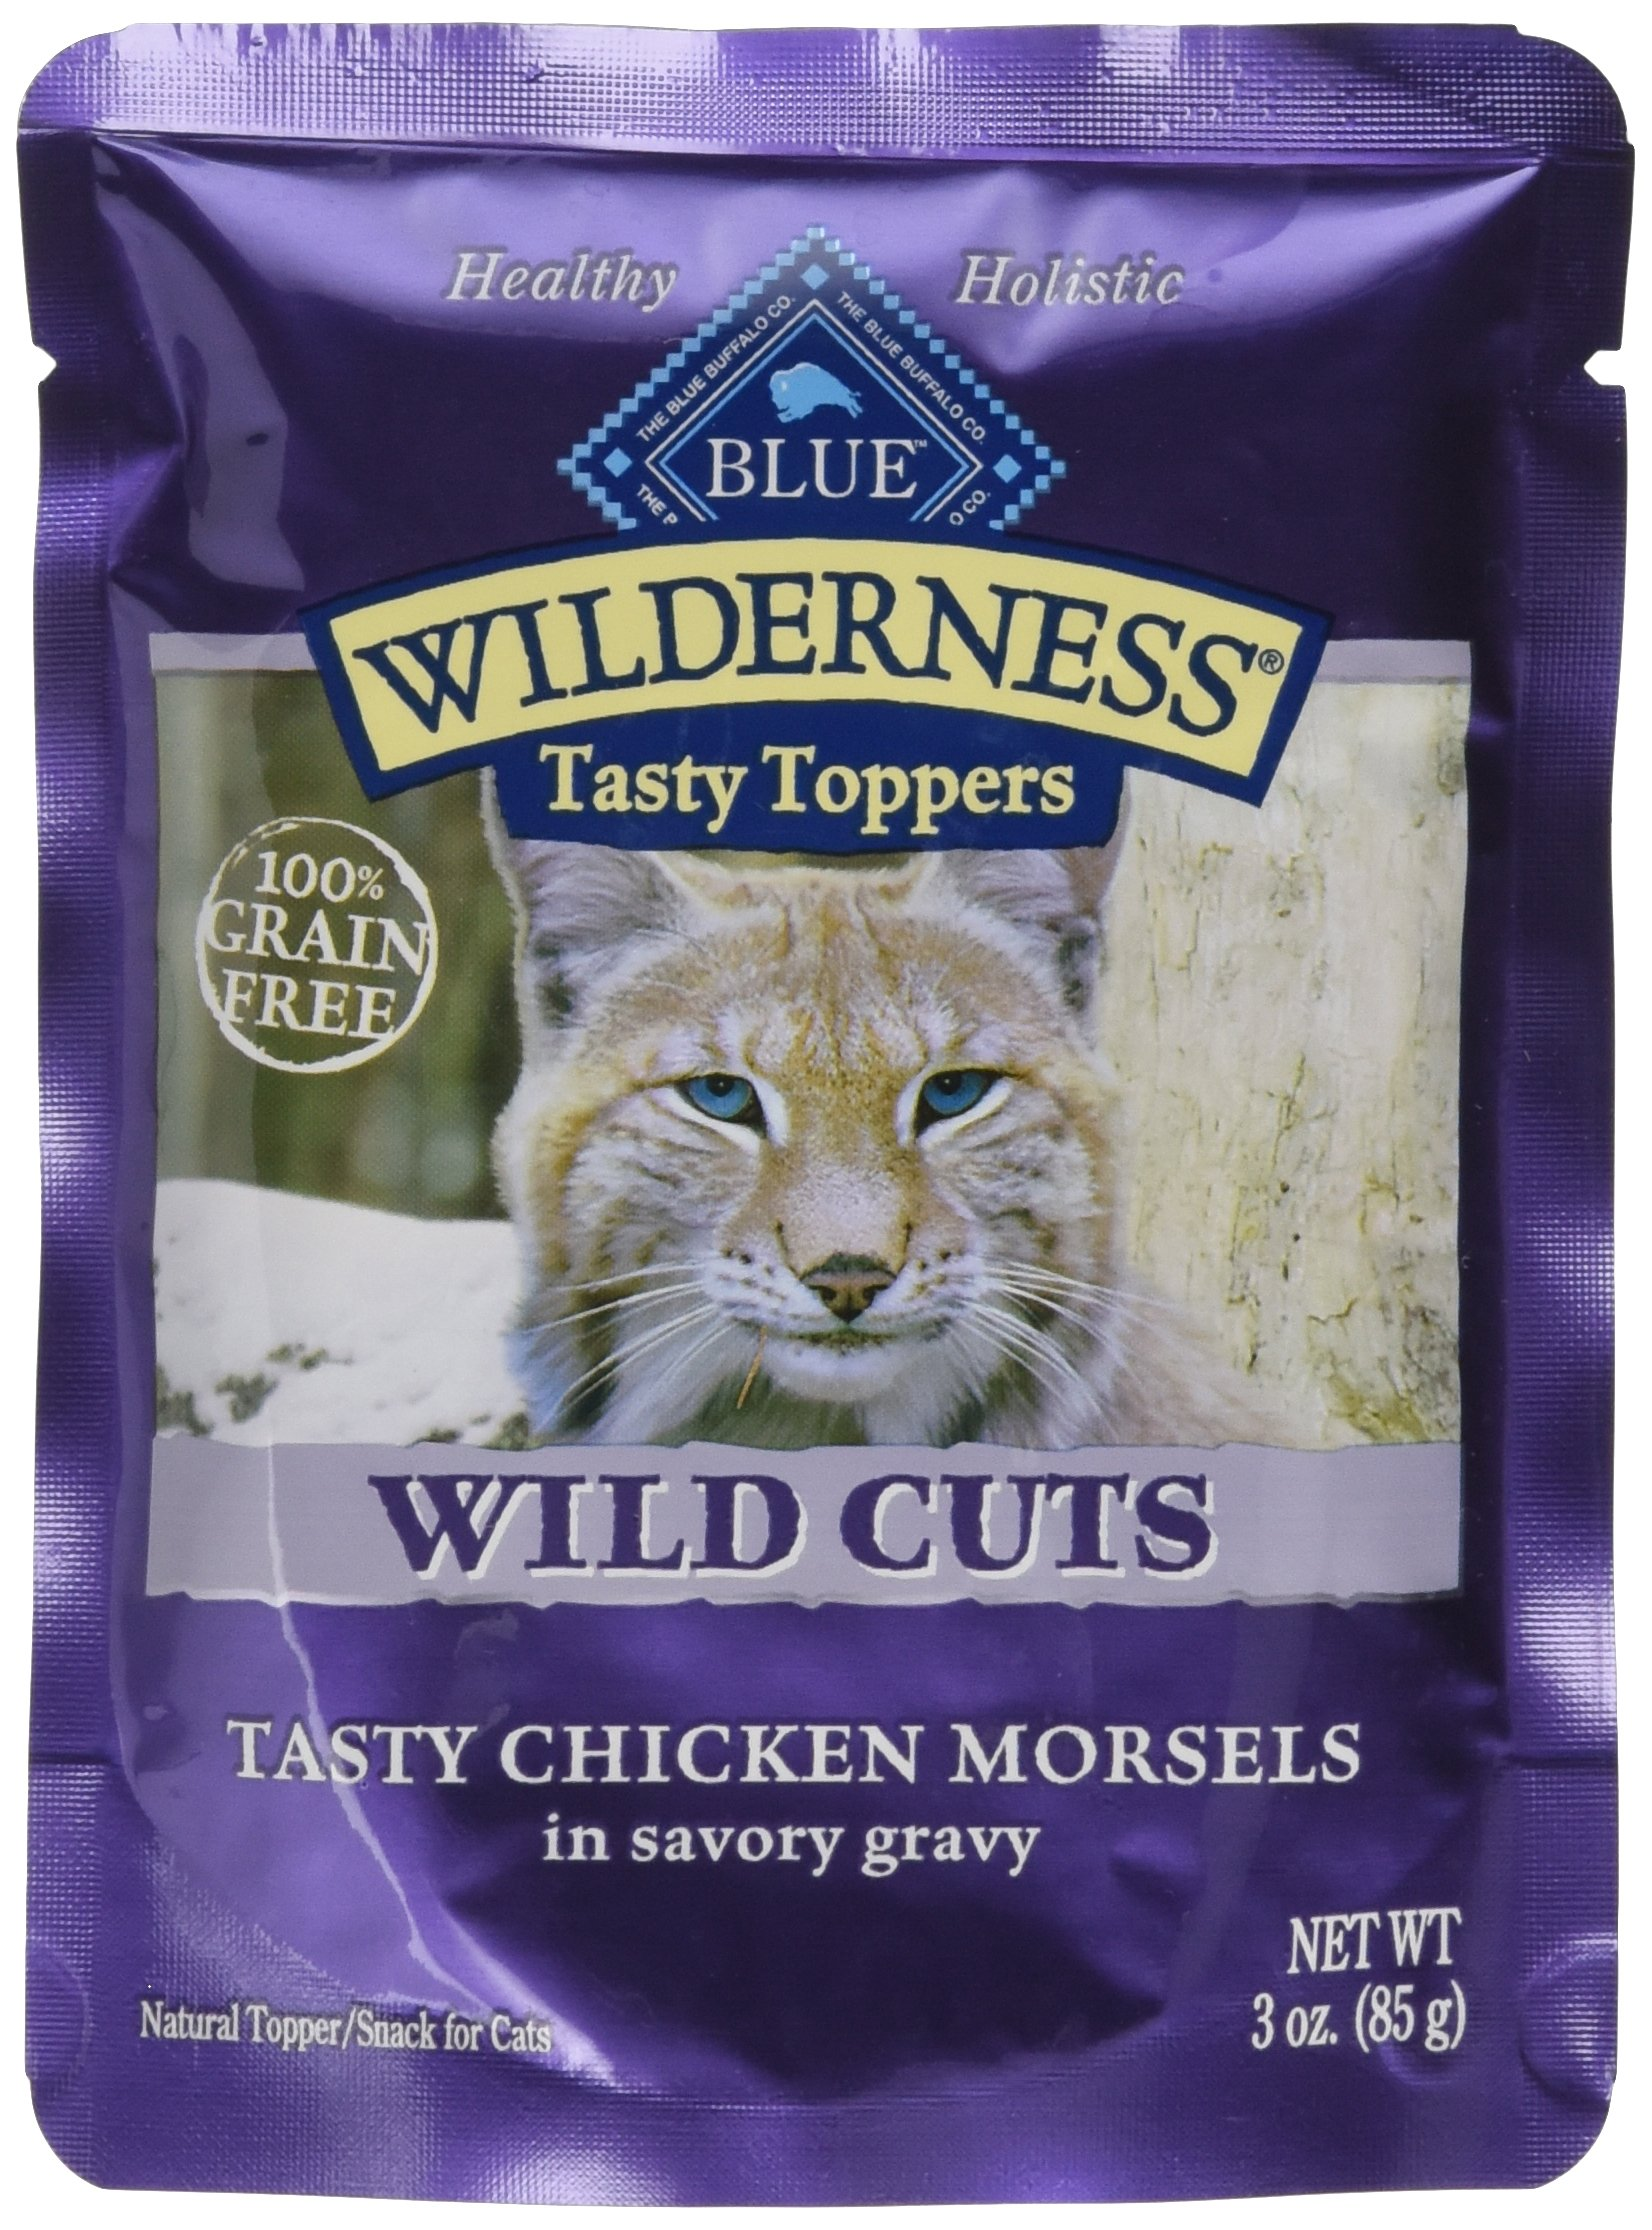 Blue Buffalo Wilderness Tasty Topper Chicken Morsels Food, 24 By 3 Oz.